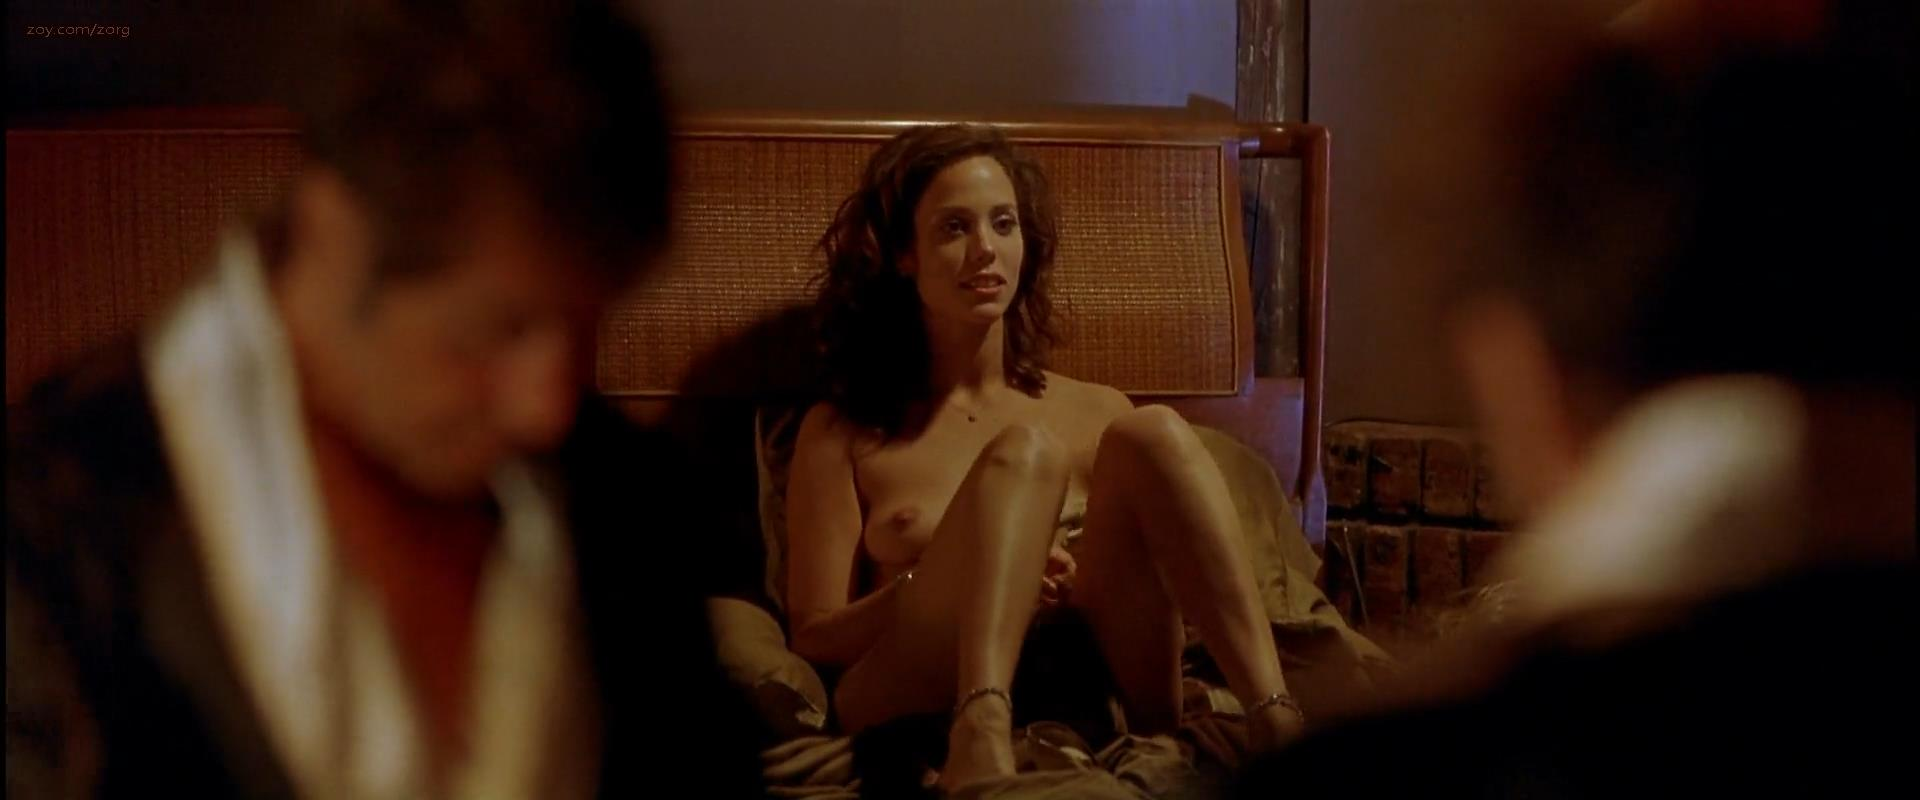 Elizabeth berkley nude movie pics difficult